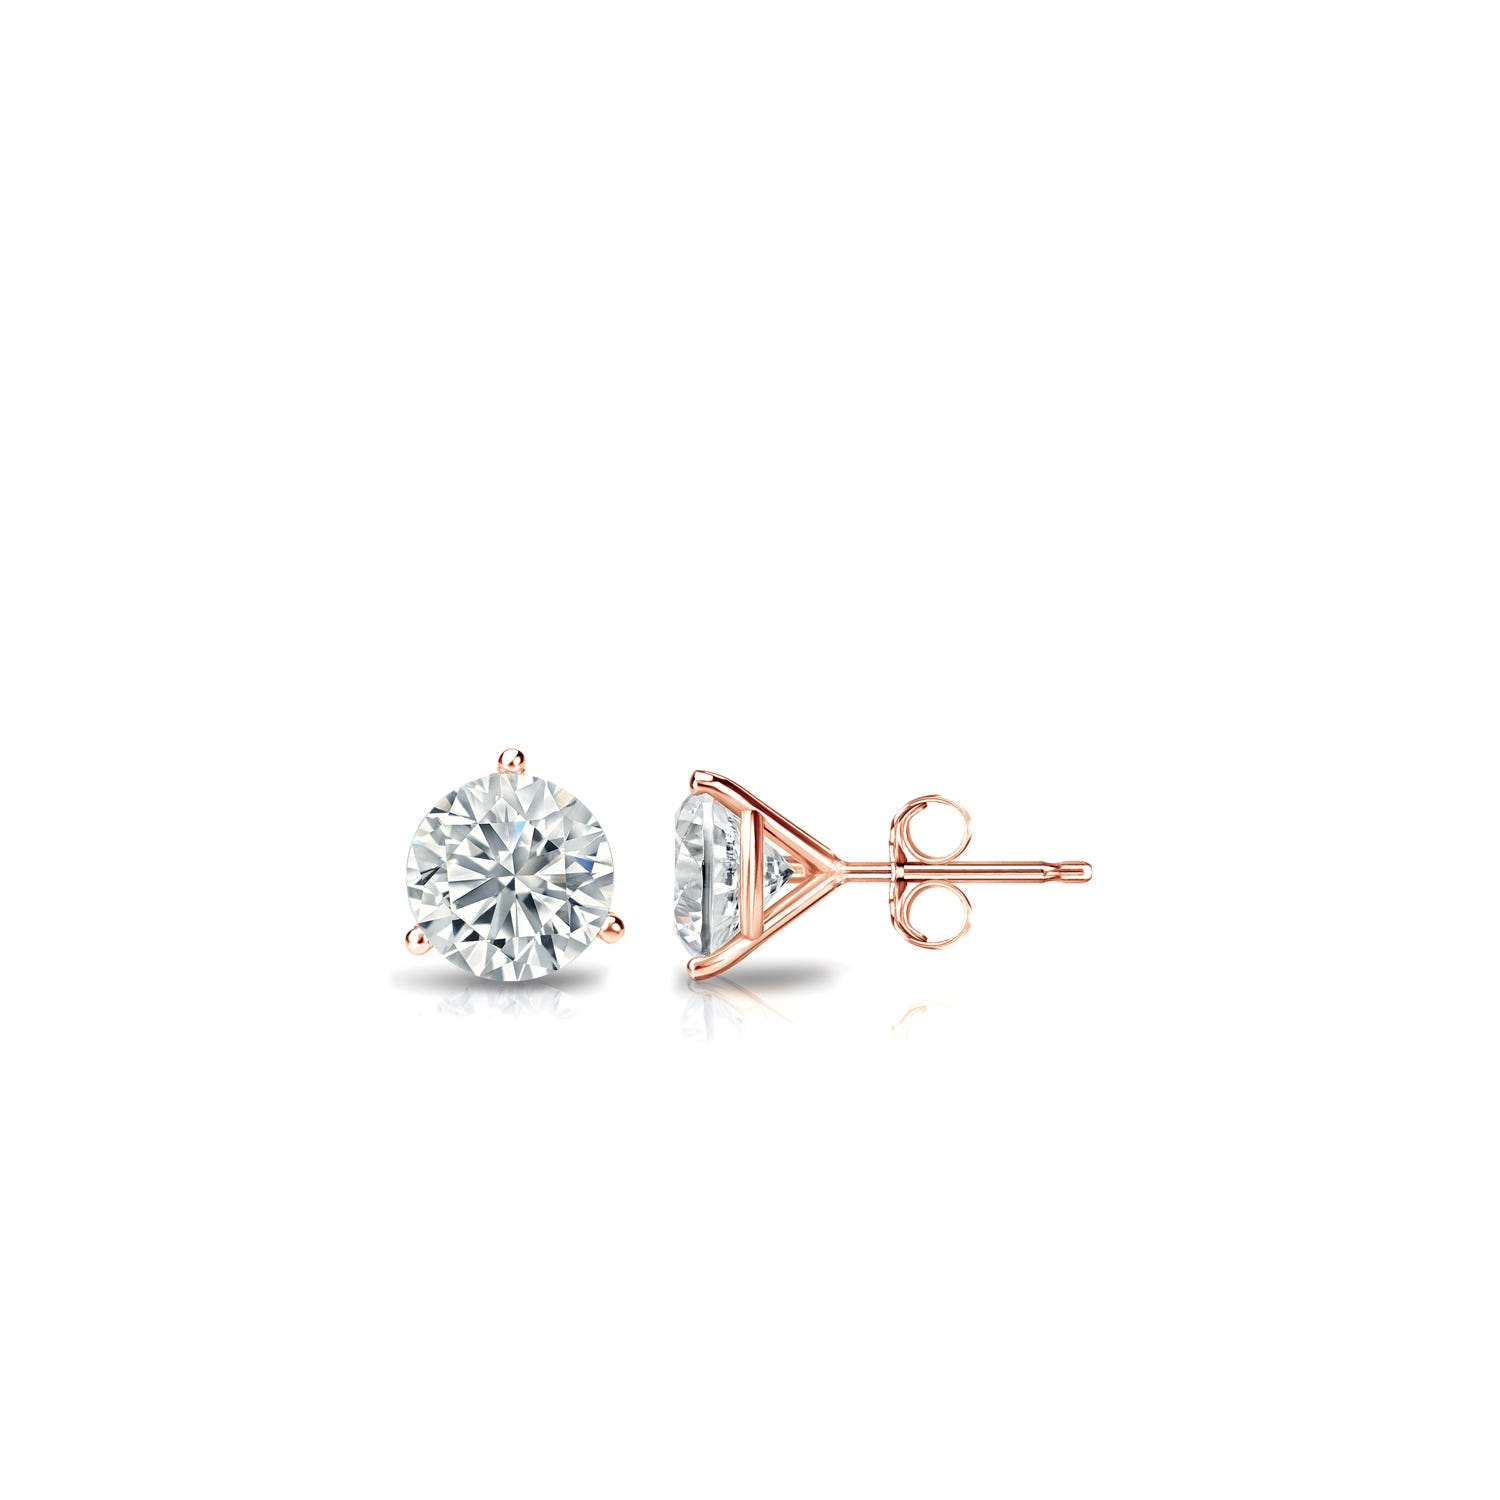 1/6 CTTW Round Diamond Solitaire Stud Earrings IJ I1 in 14K Rose Gold 3-Prong Setting